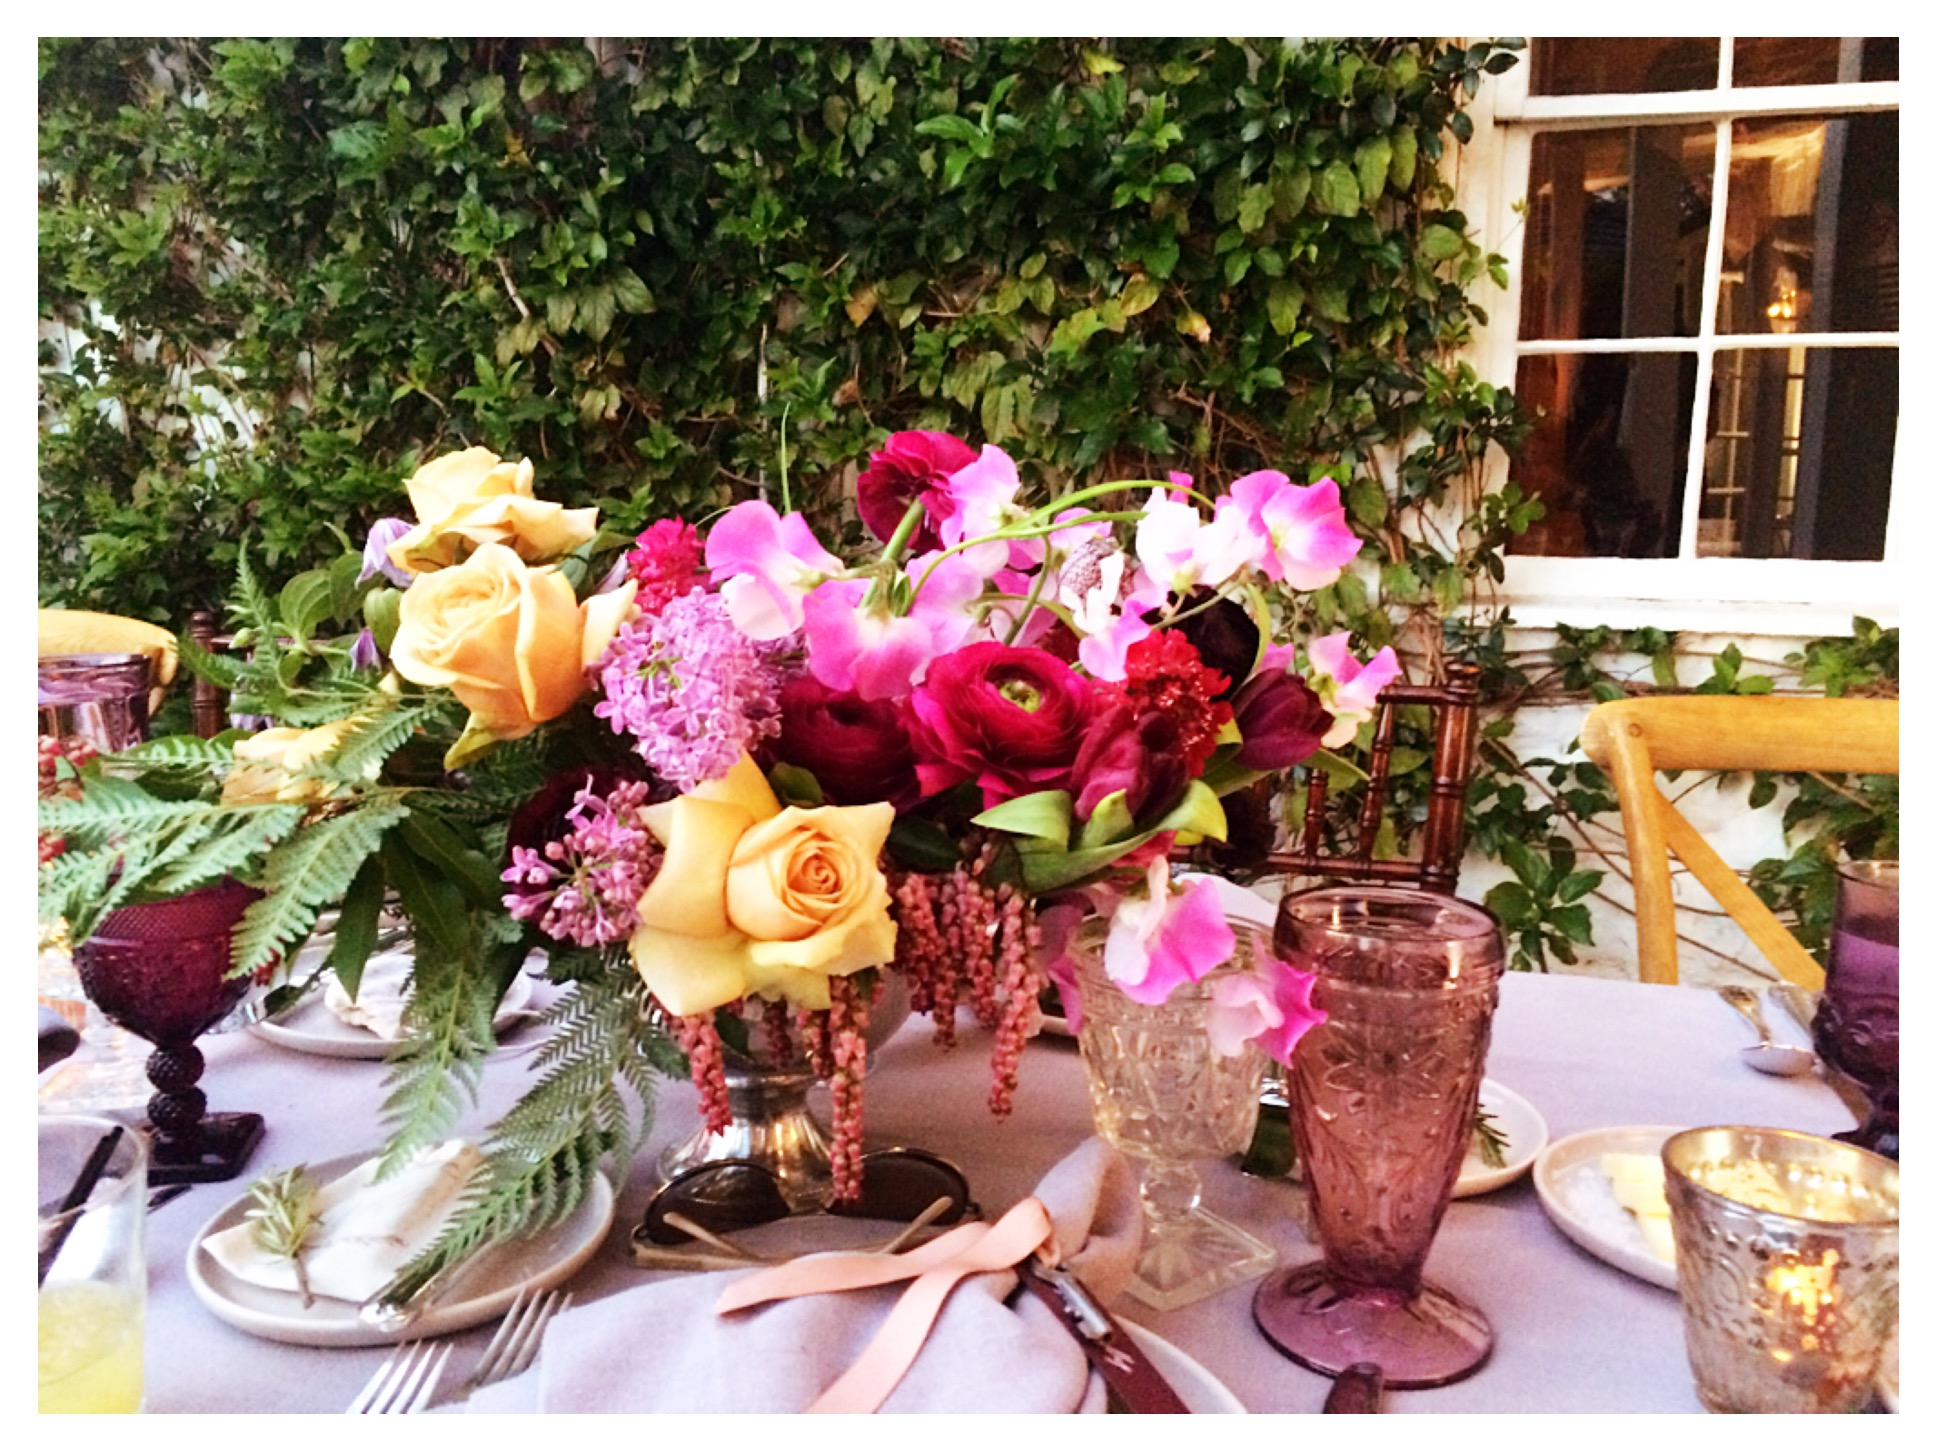 Romantic Wine Soaked Floral Arrangements